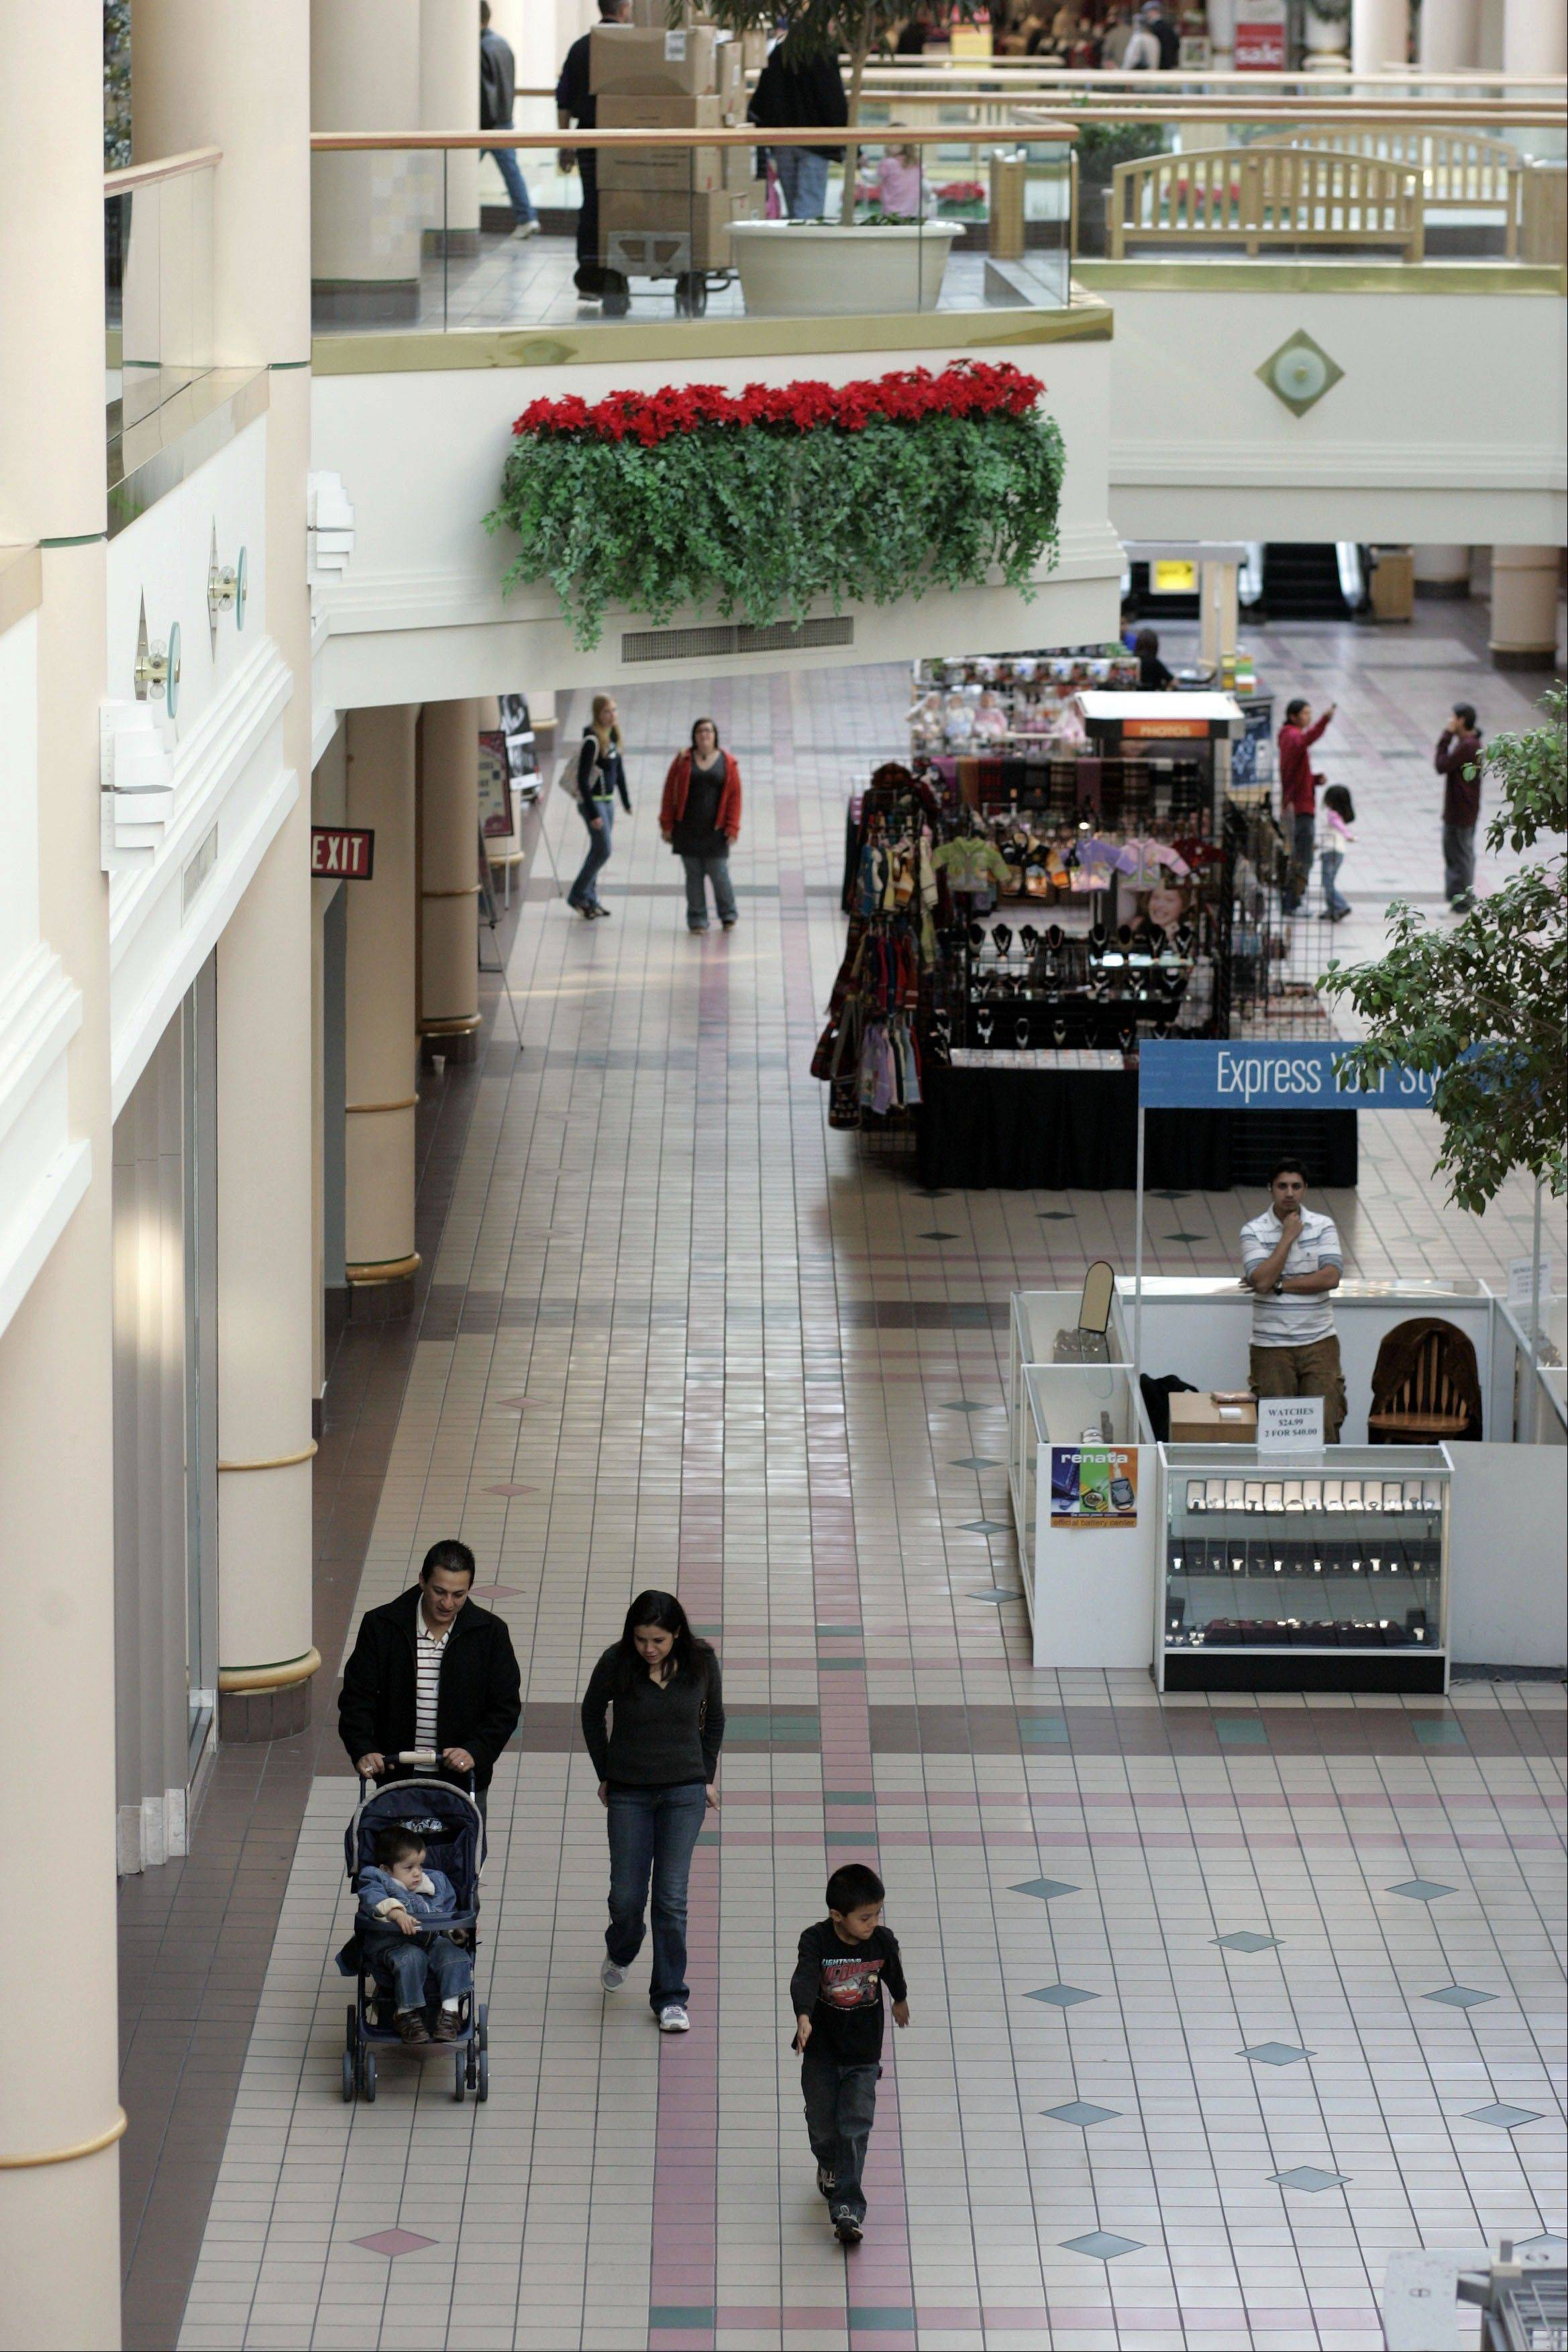 Some readers who responded to a Dave Heun question about change said they�d like to see a more vibrant Charlestowne Mall in St. Charles.